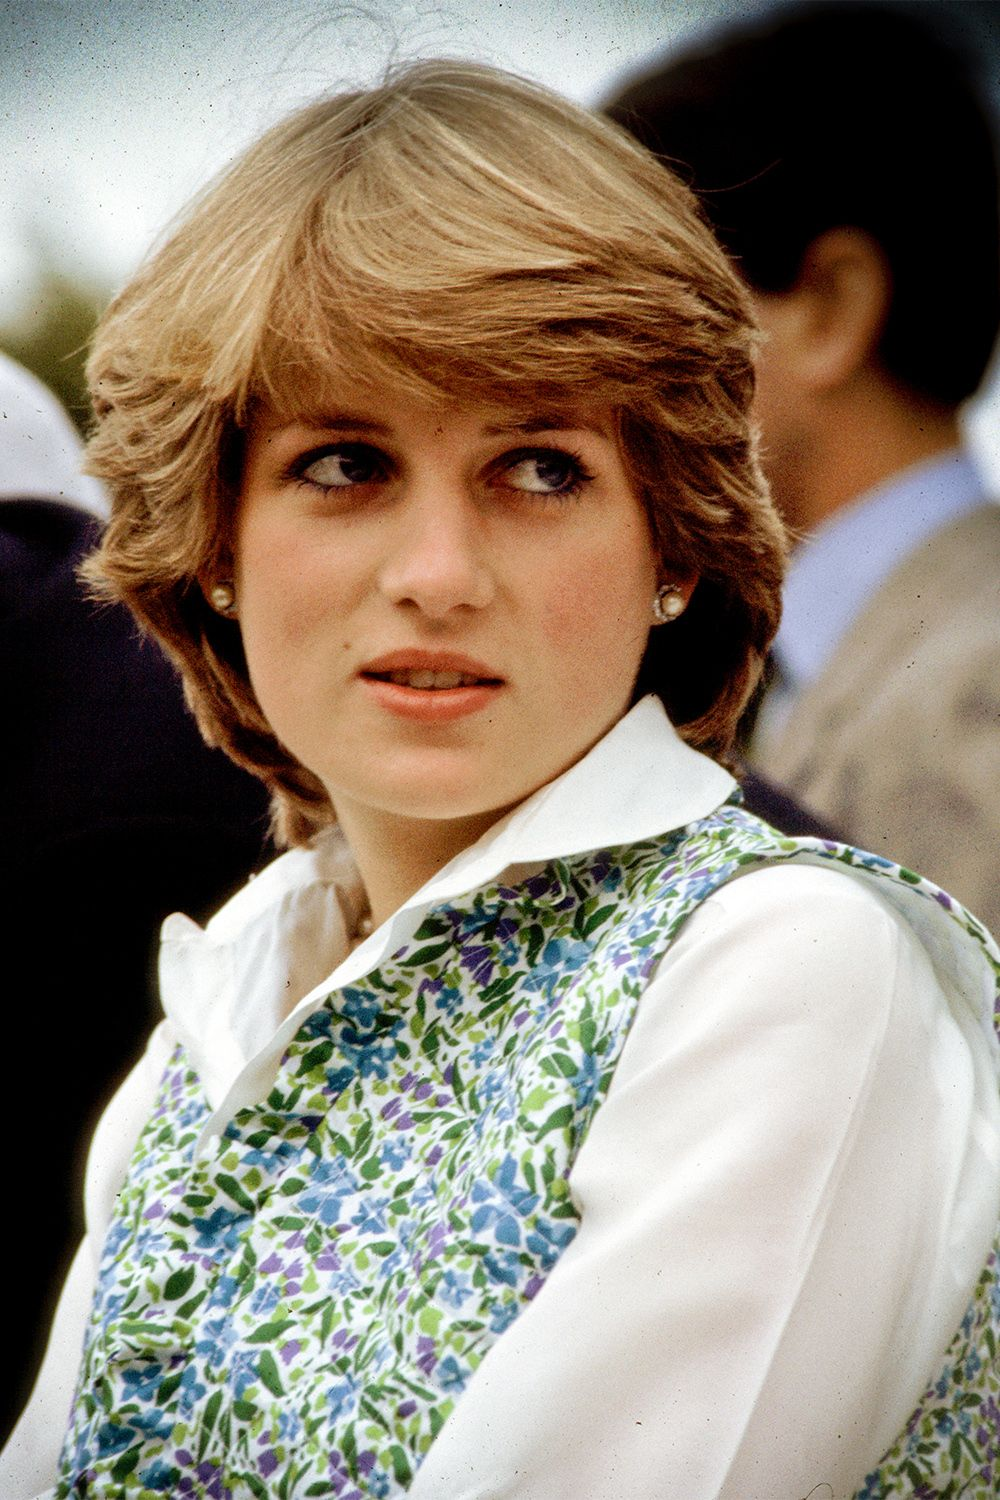 Princess Diana Hairstyles And Cut Princess Diana Hair